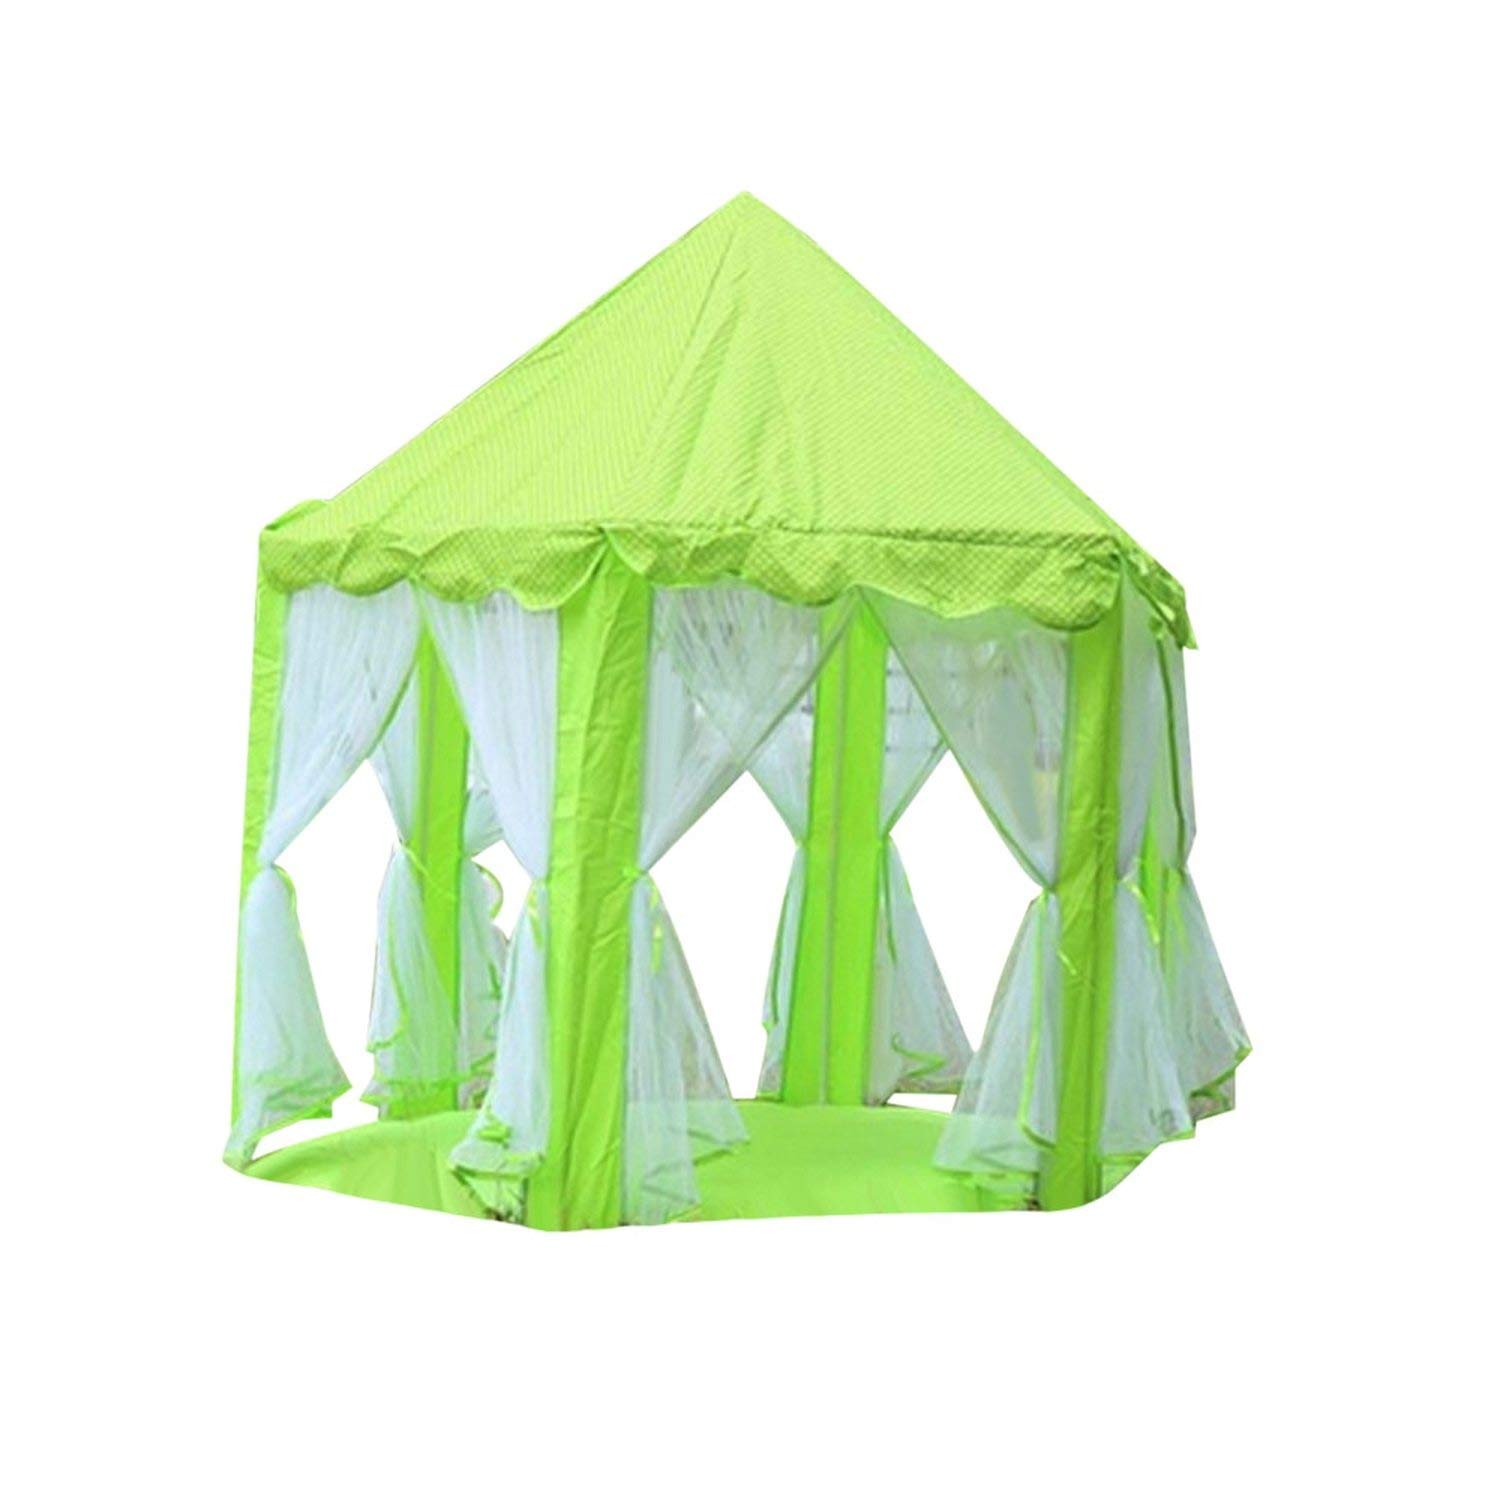 Princess Castle Mosquito Net Game Tents Outdoor Camping Children's Game House Kids Girl Portable Tent Playing Beach Park Garden,Green